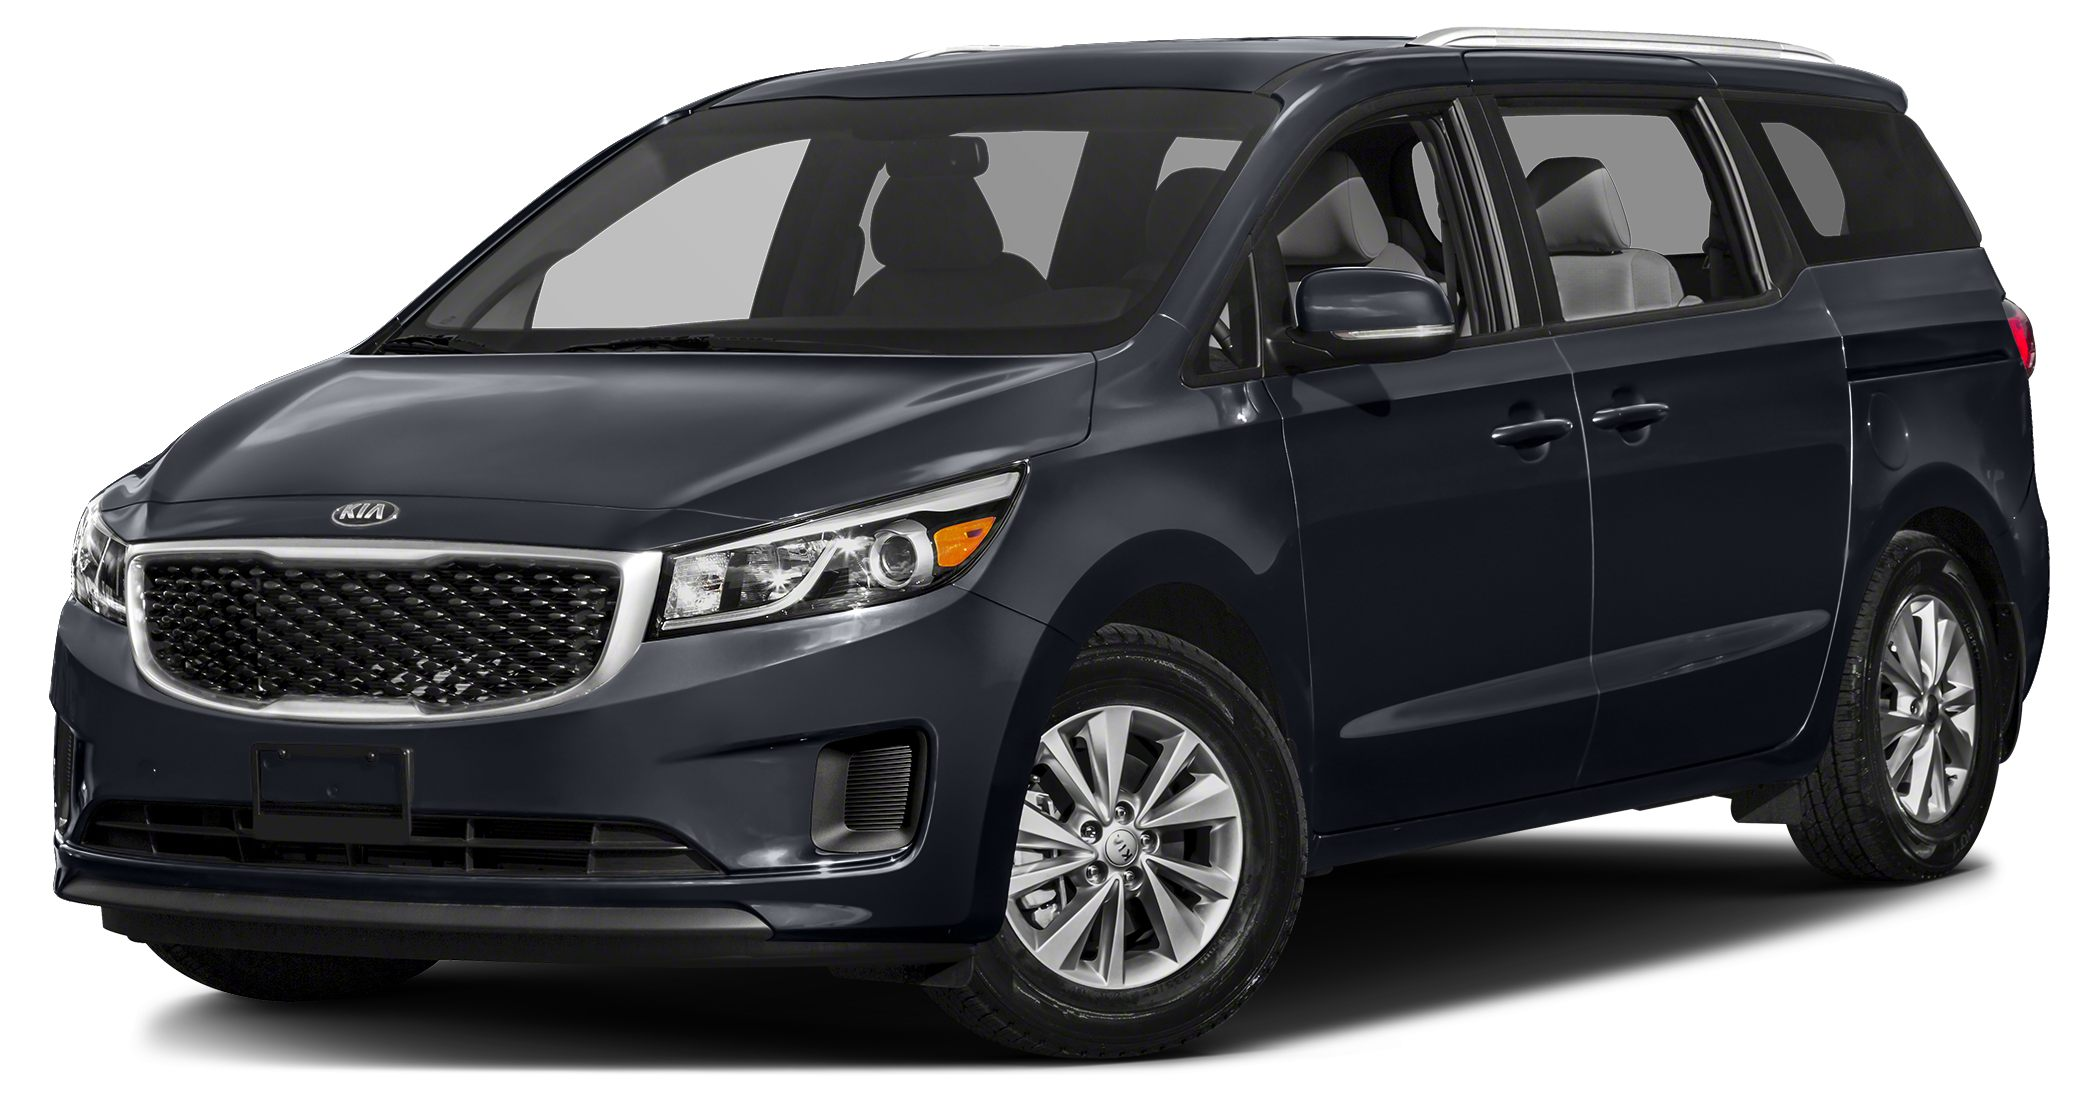 2018 Kia Sedona EX Transform your drive with the 2018 Kia Sedona The Sedona breaks convention and